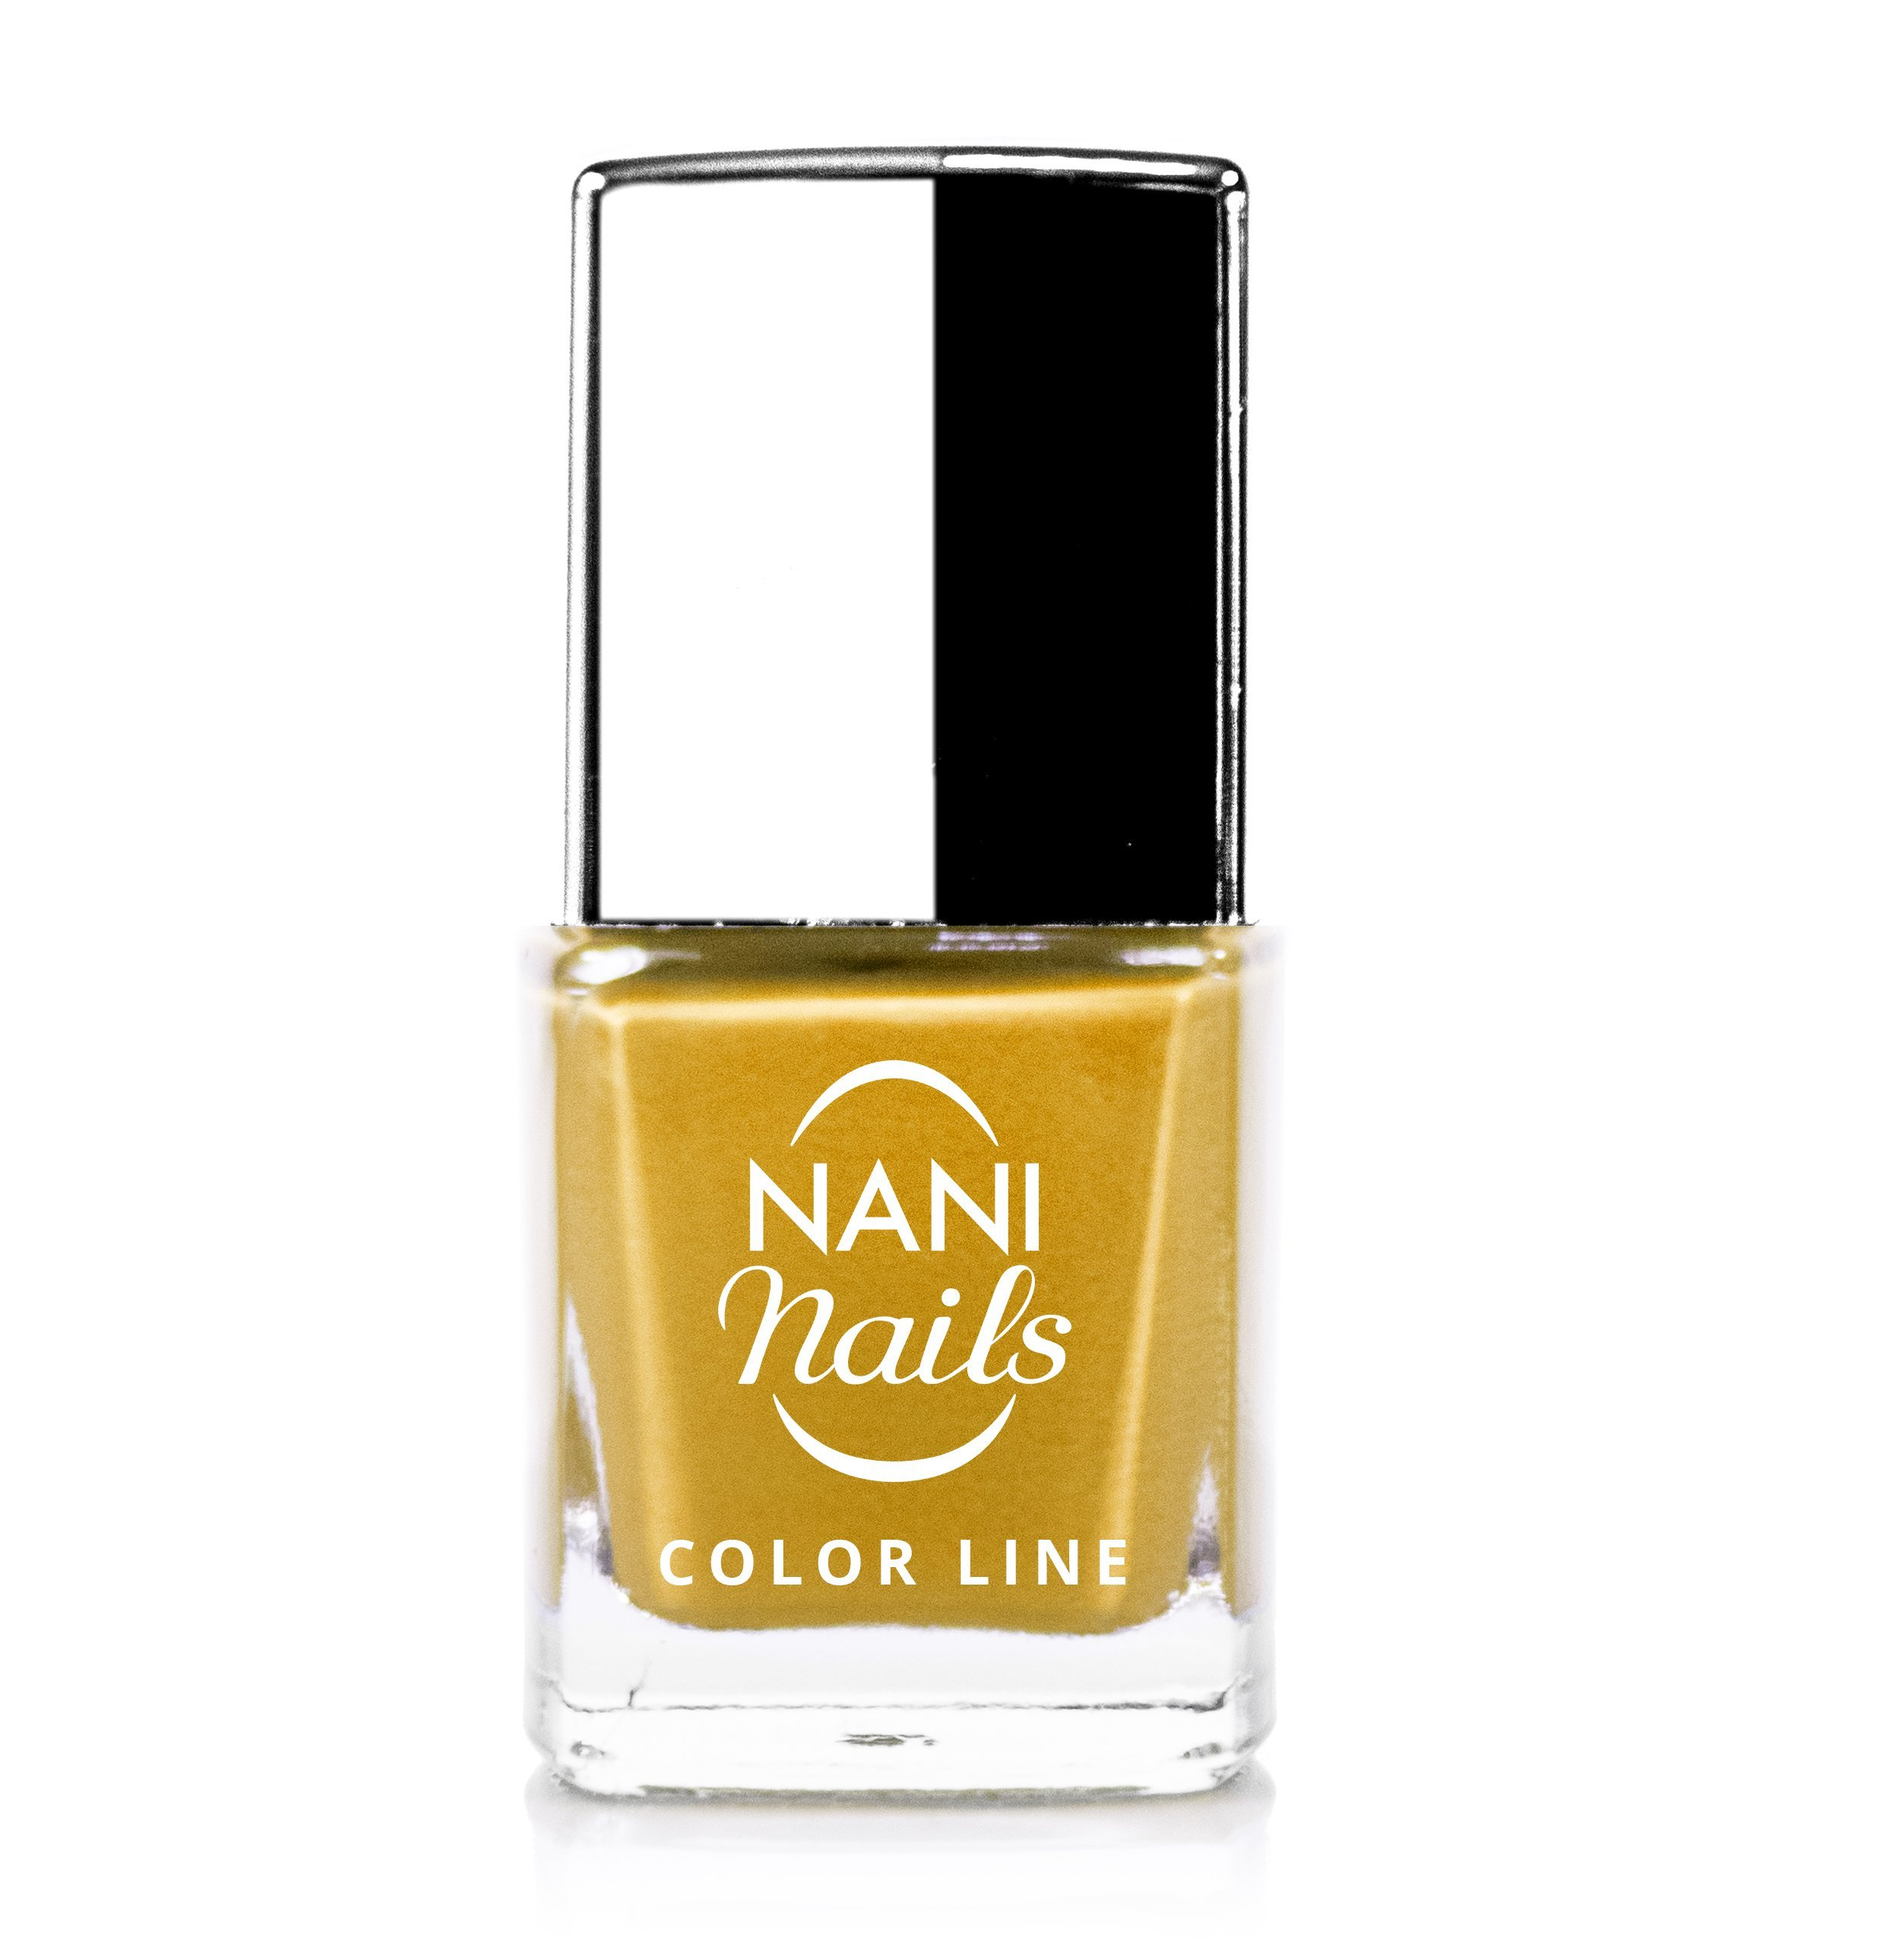 NANI lak Color Line 9 ml - 30